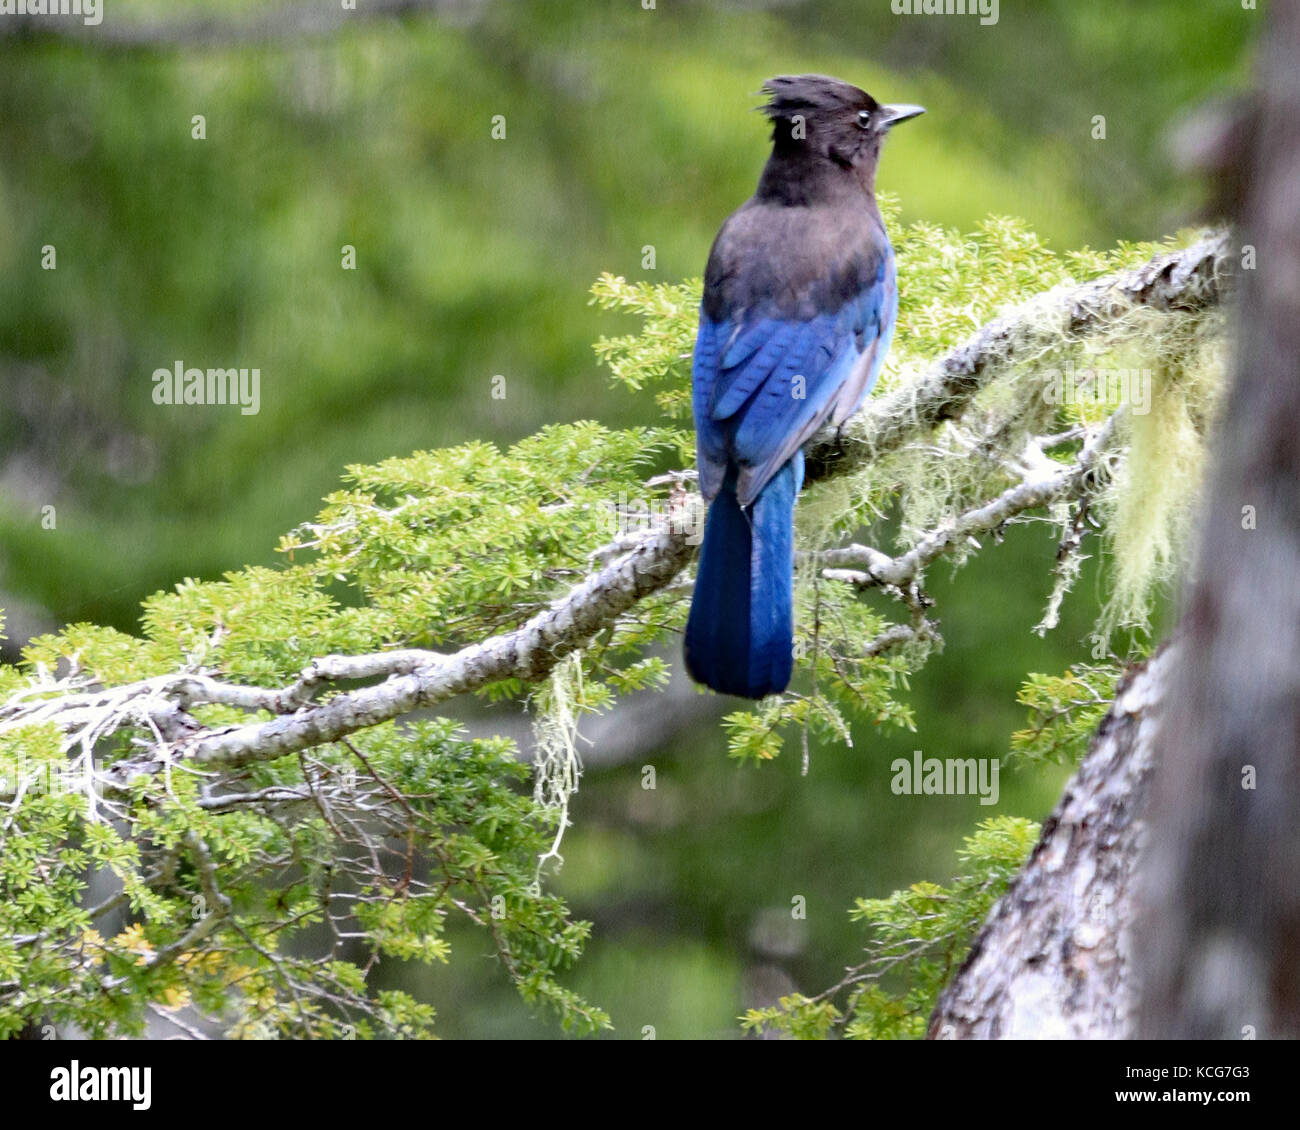 Beautiful blue Stellar's jay perched on green pine branch in the Tongass National forest, Alaska - Stock Image